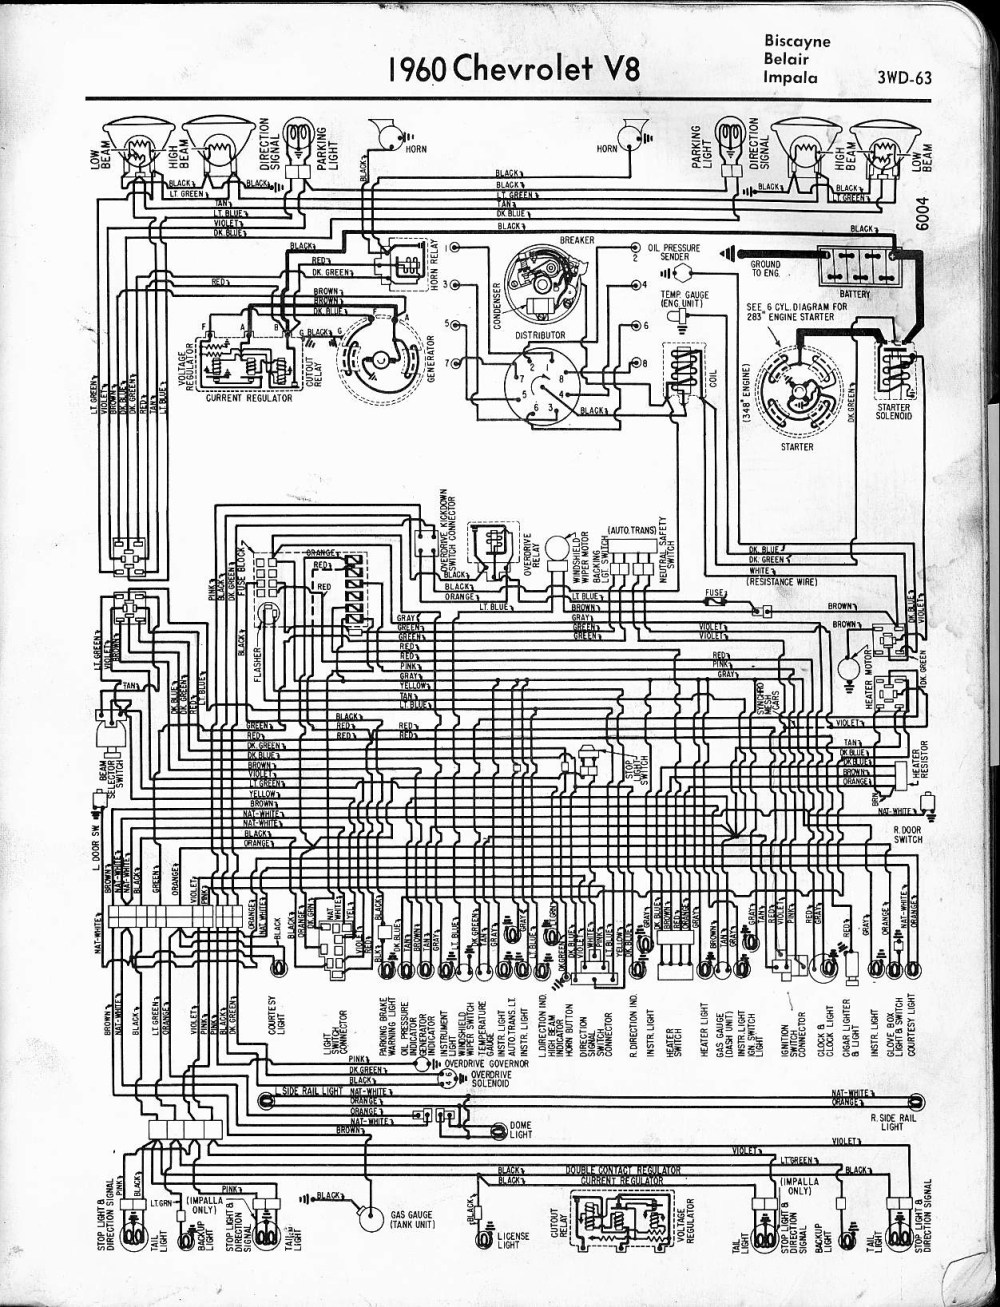 medium resolution of international truck wiring diagram schematic 1960 v8 biscayne belair impala 8a